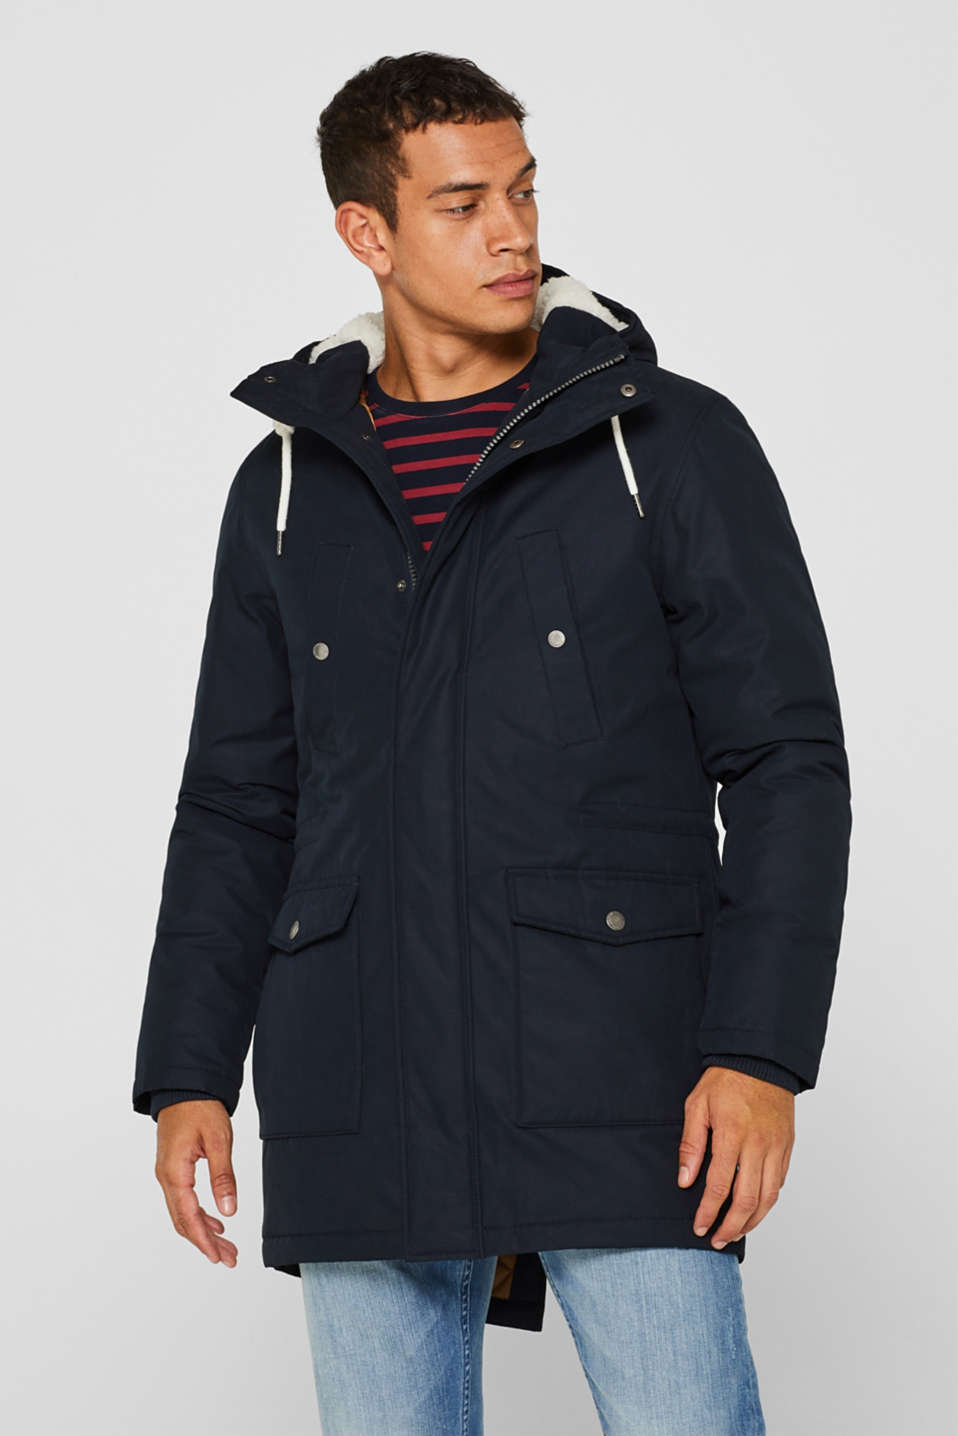 edc - Parka with hood, made of blended cotton